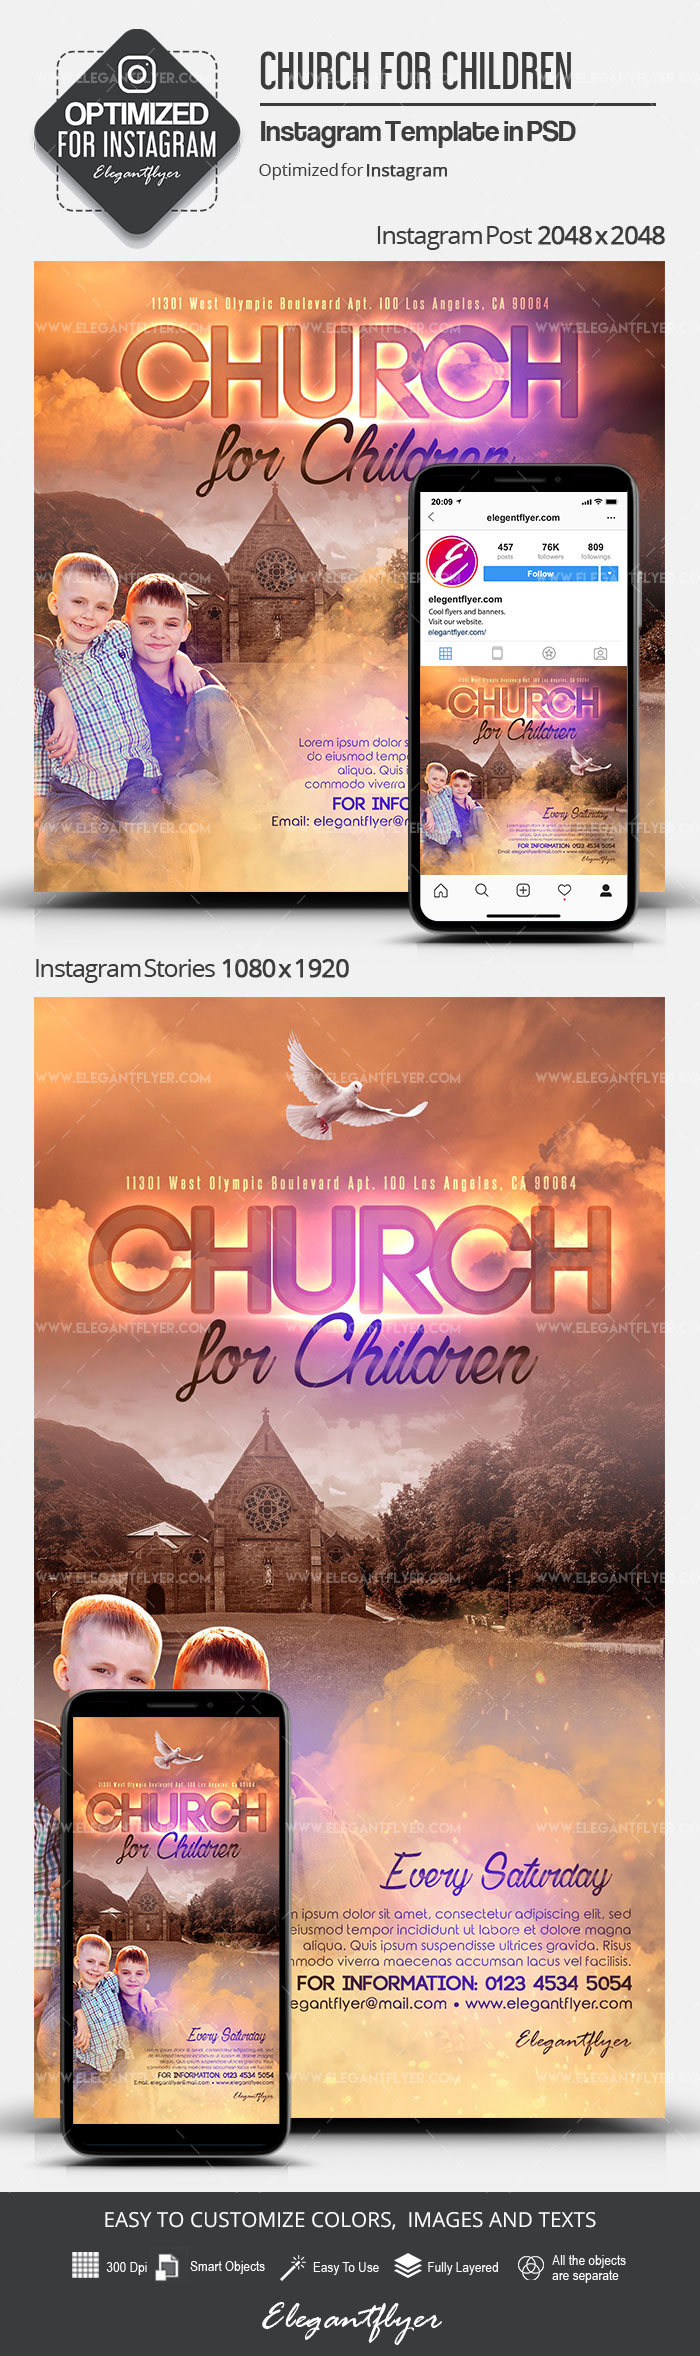 Church for Children – Instagram Stories Template in PSD + Post Templates